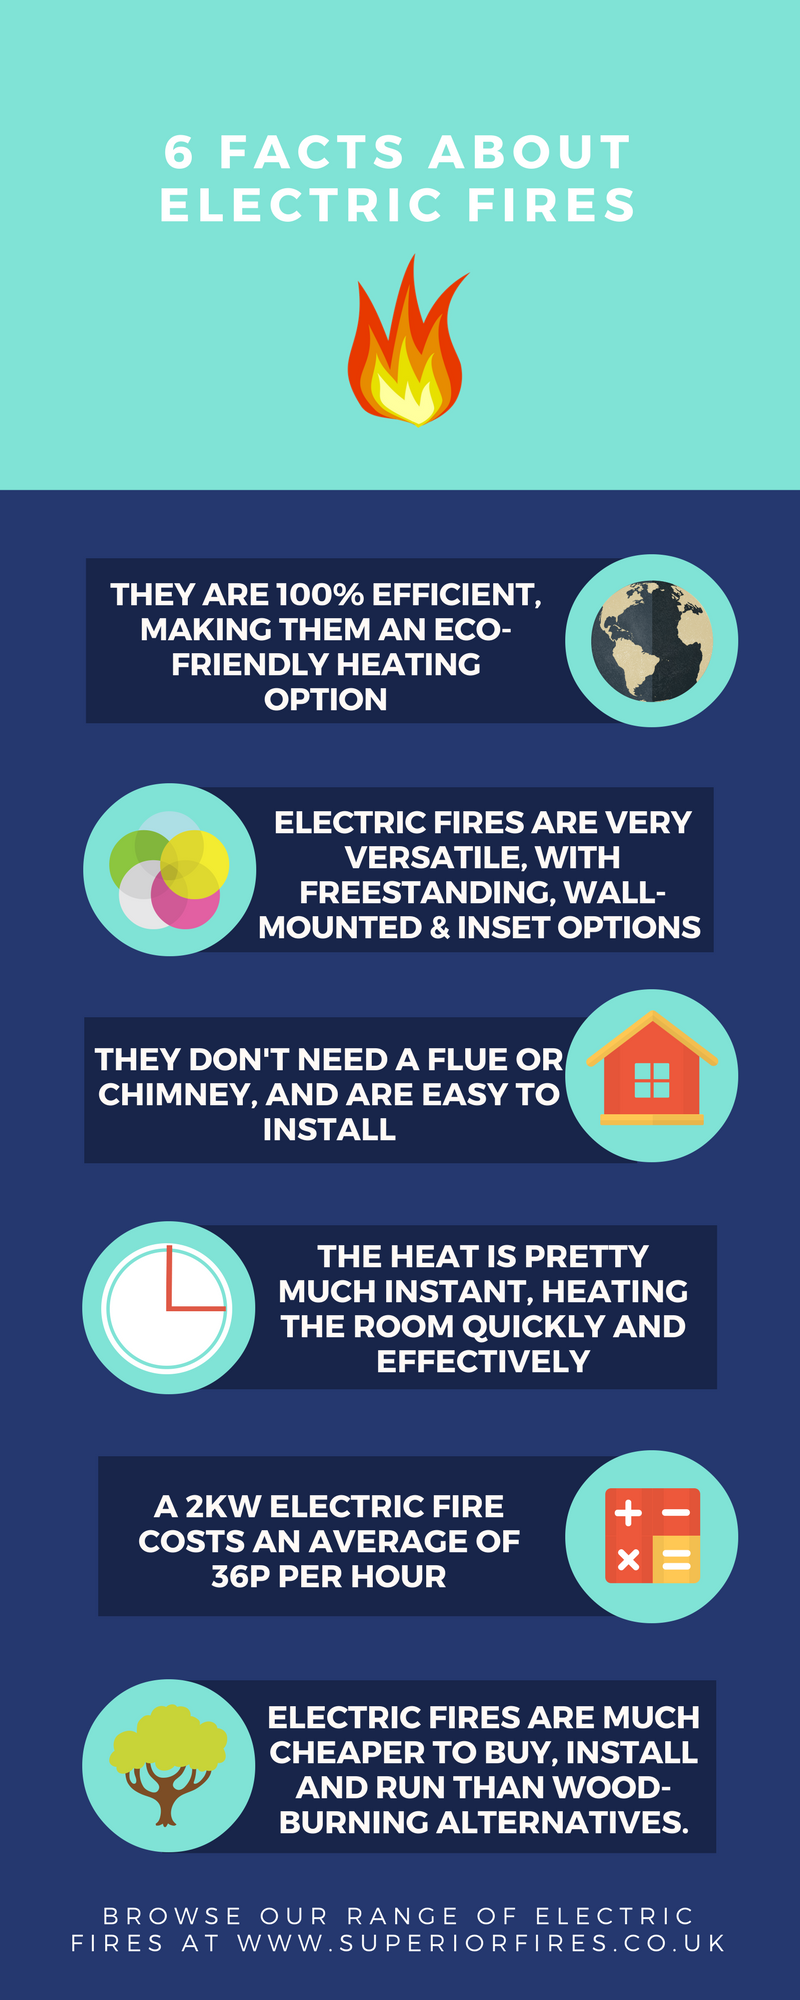 6 facts about electric fires infographic